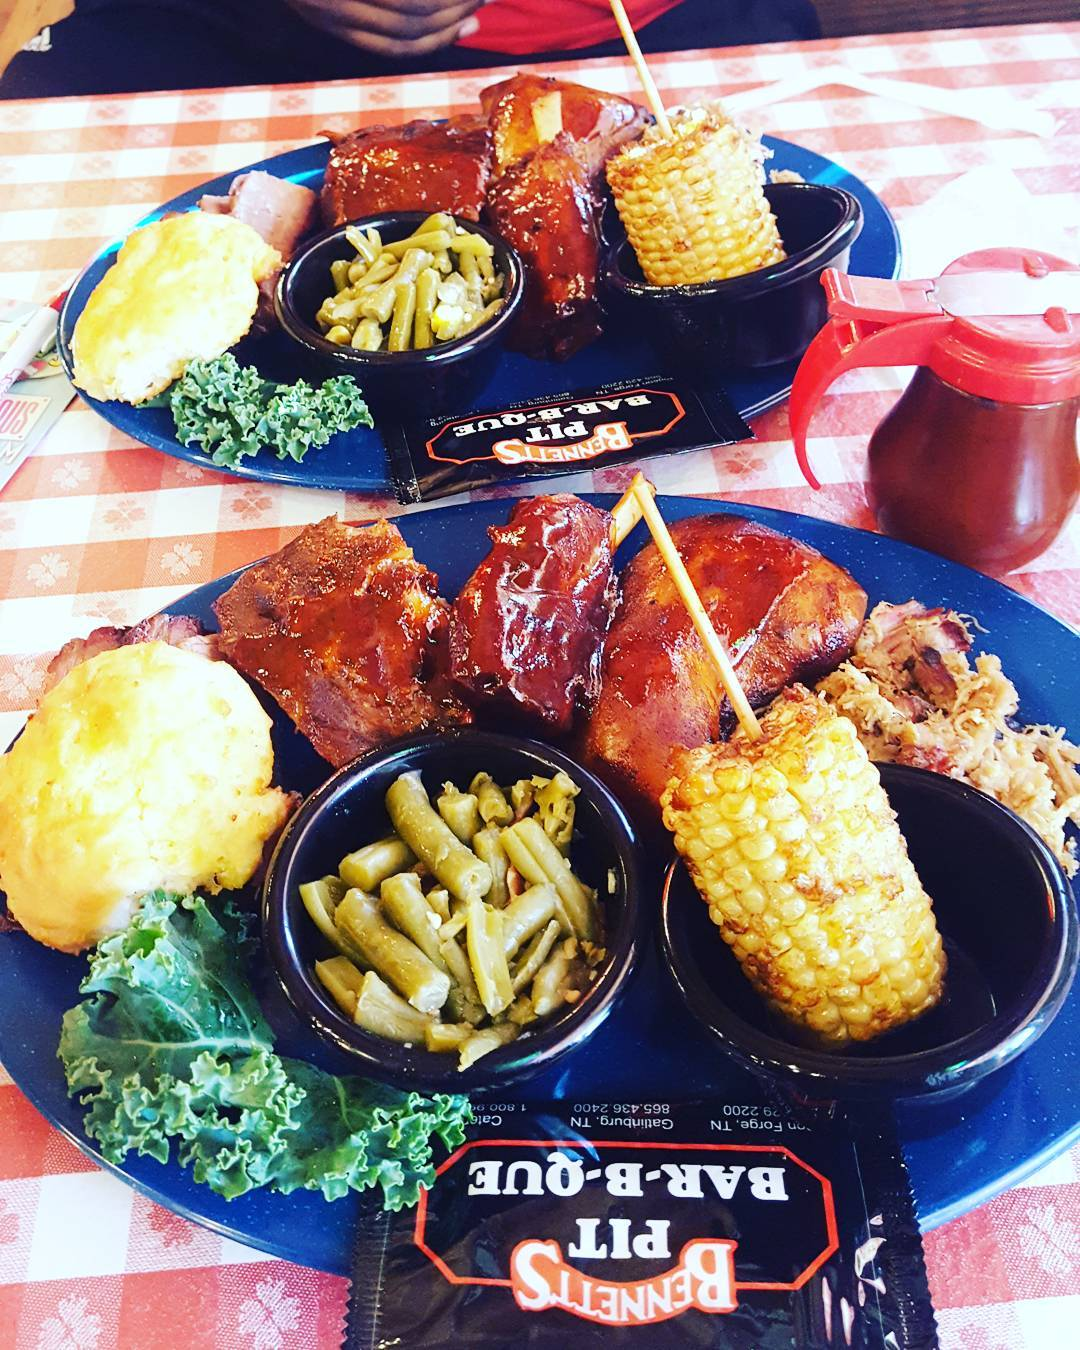 Pigeon Forge Restaurants - Bennett's BBQ Pigeon Forge - Original Photo